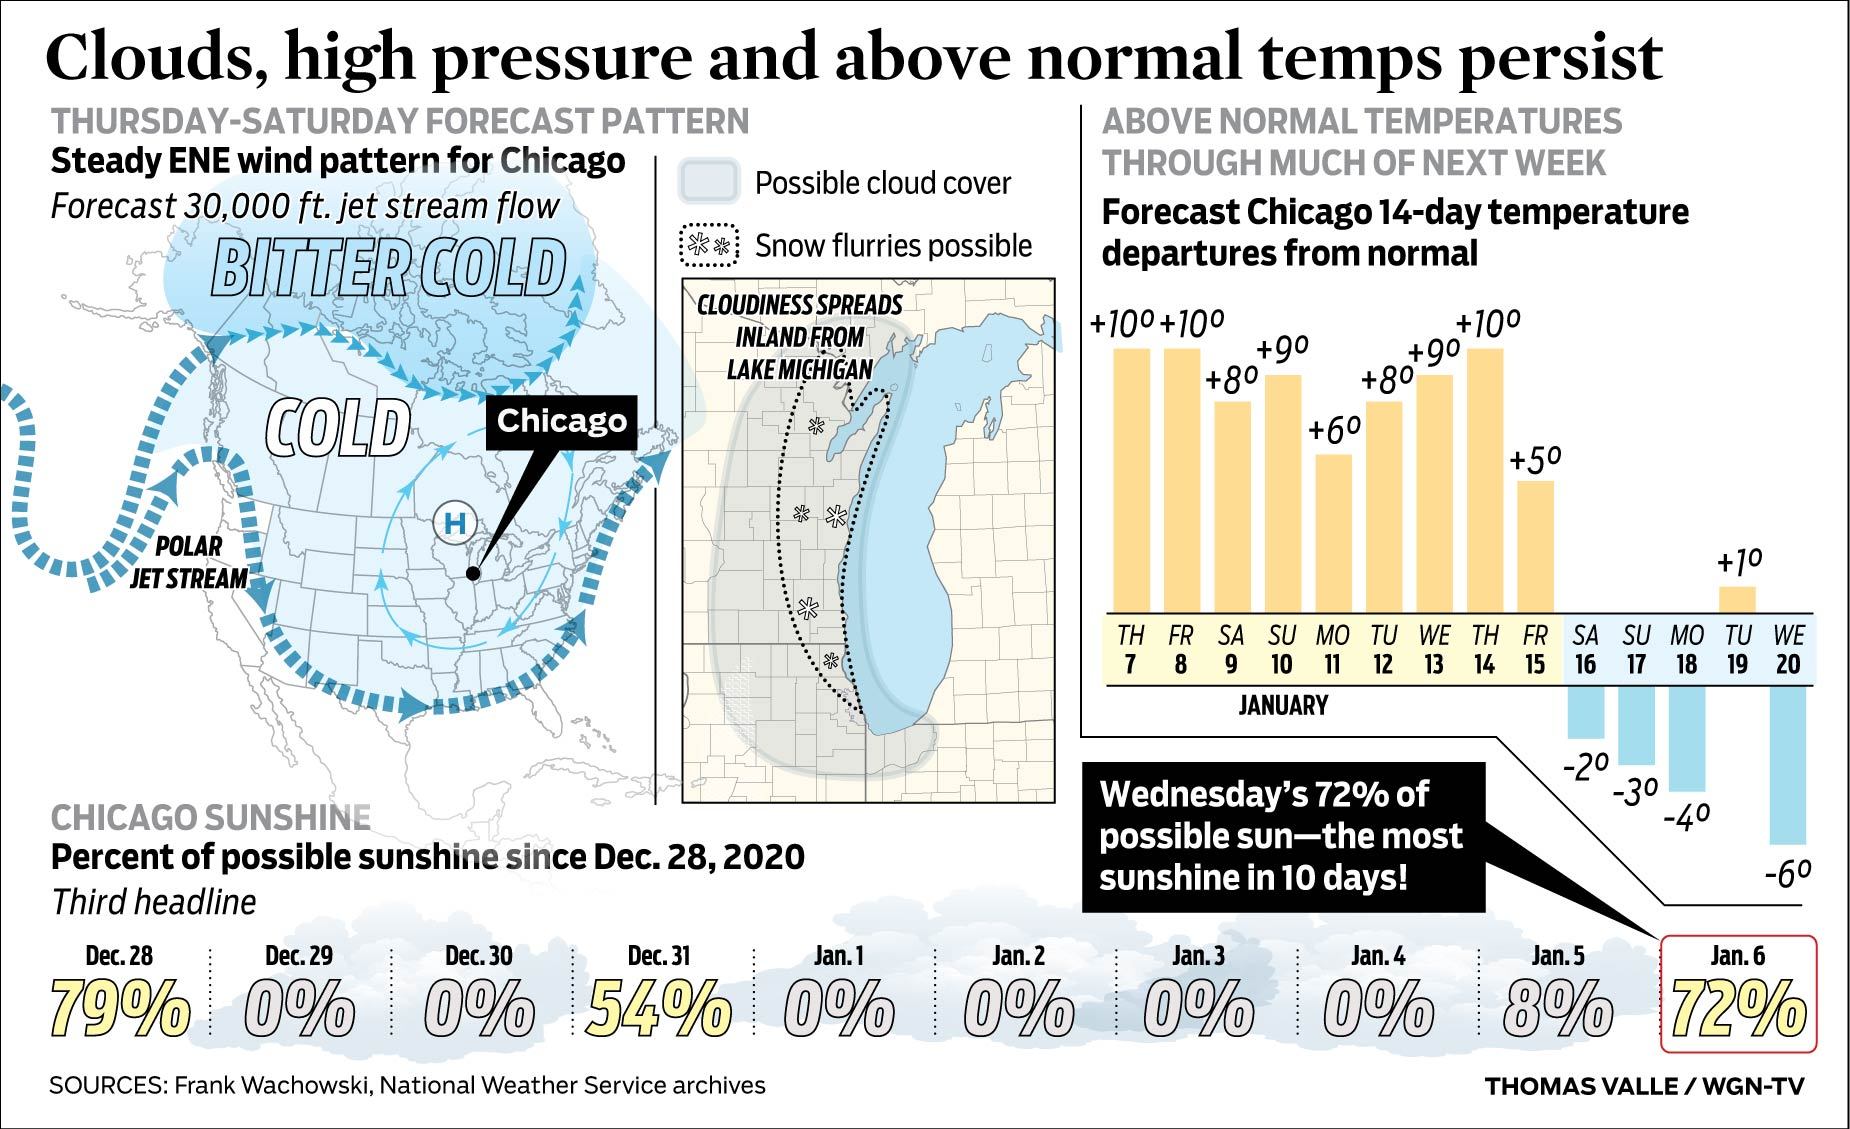 Clouds High Pressure And Above Normal Temps Persist Wgn Tv